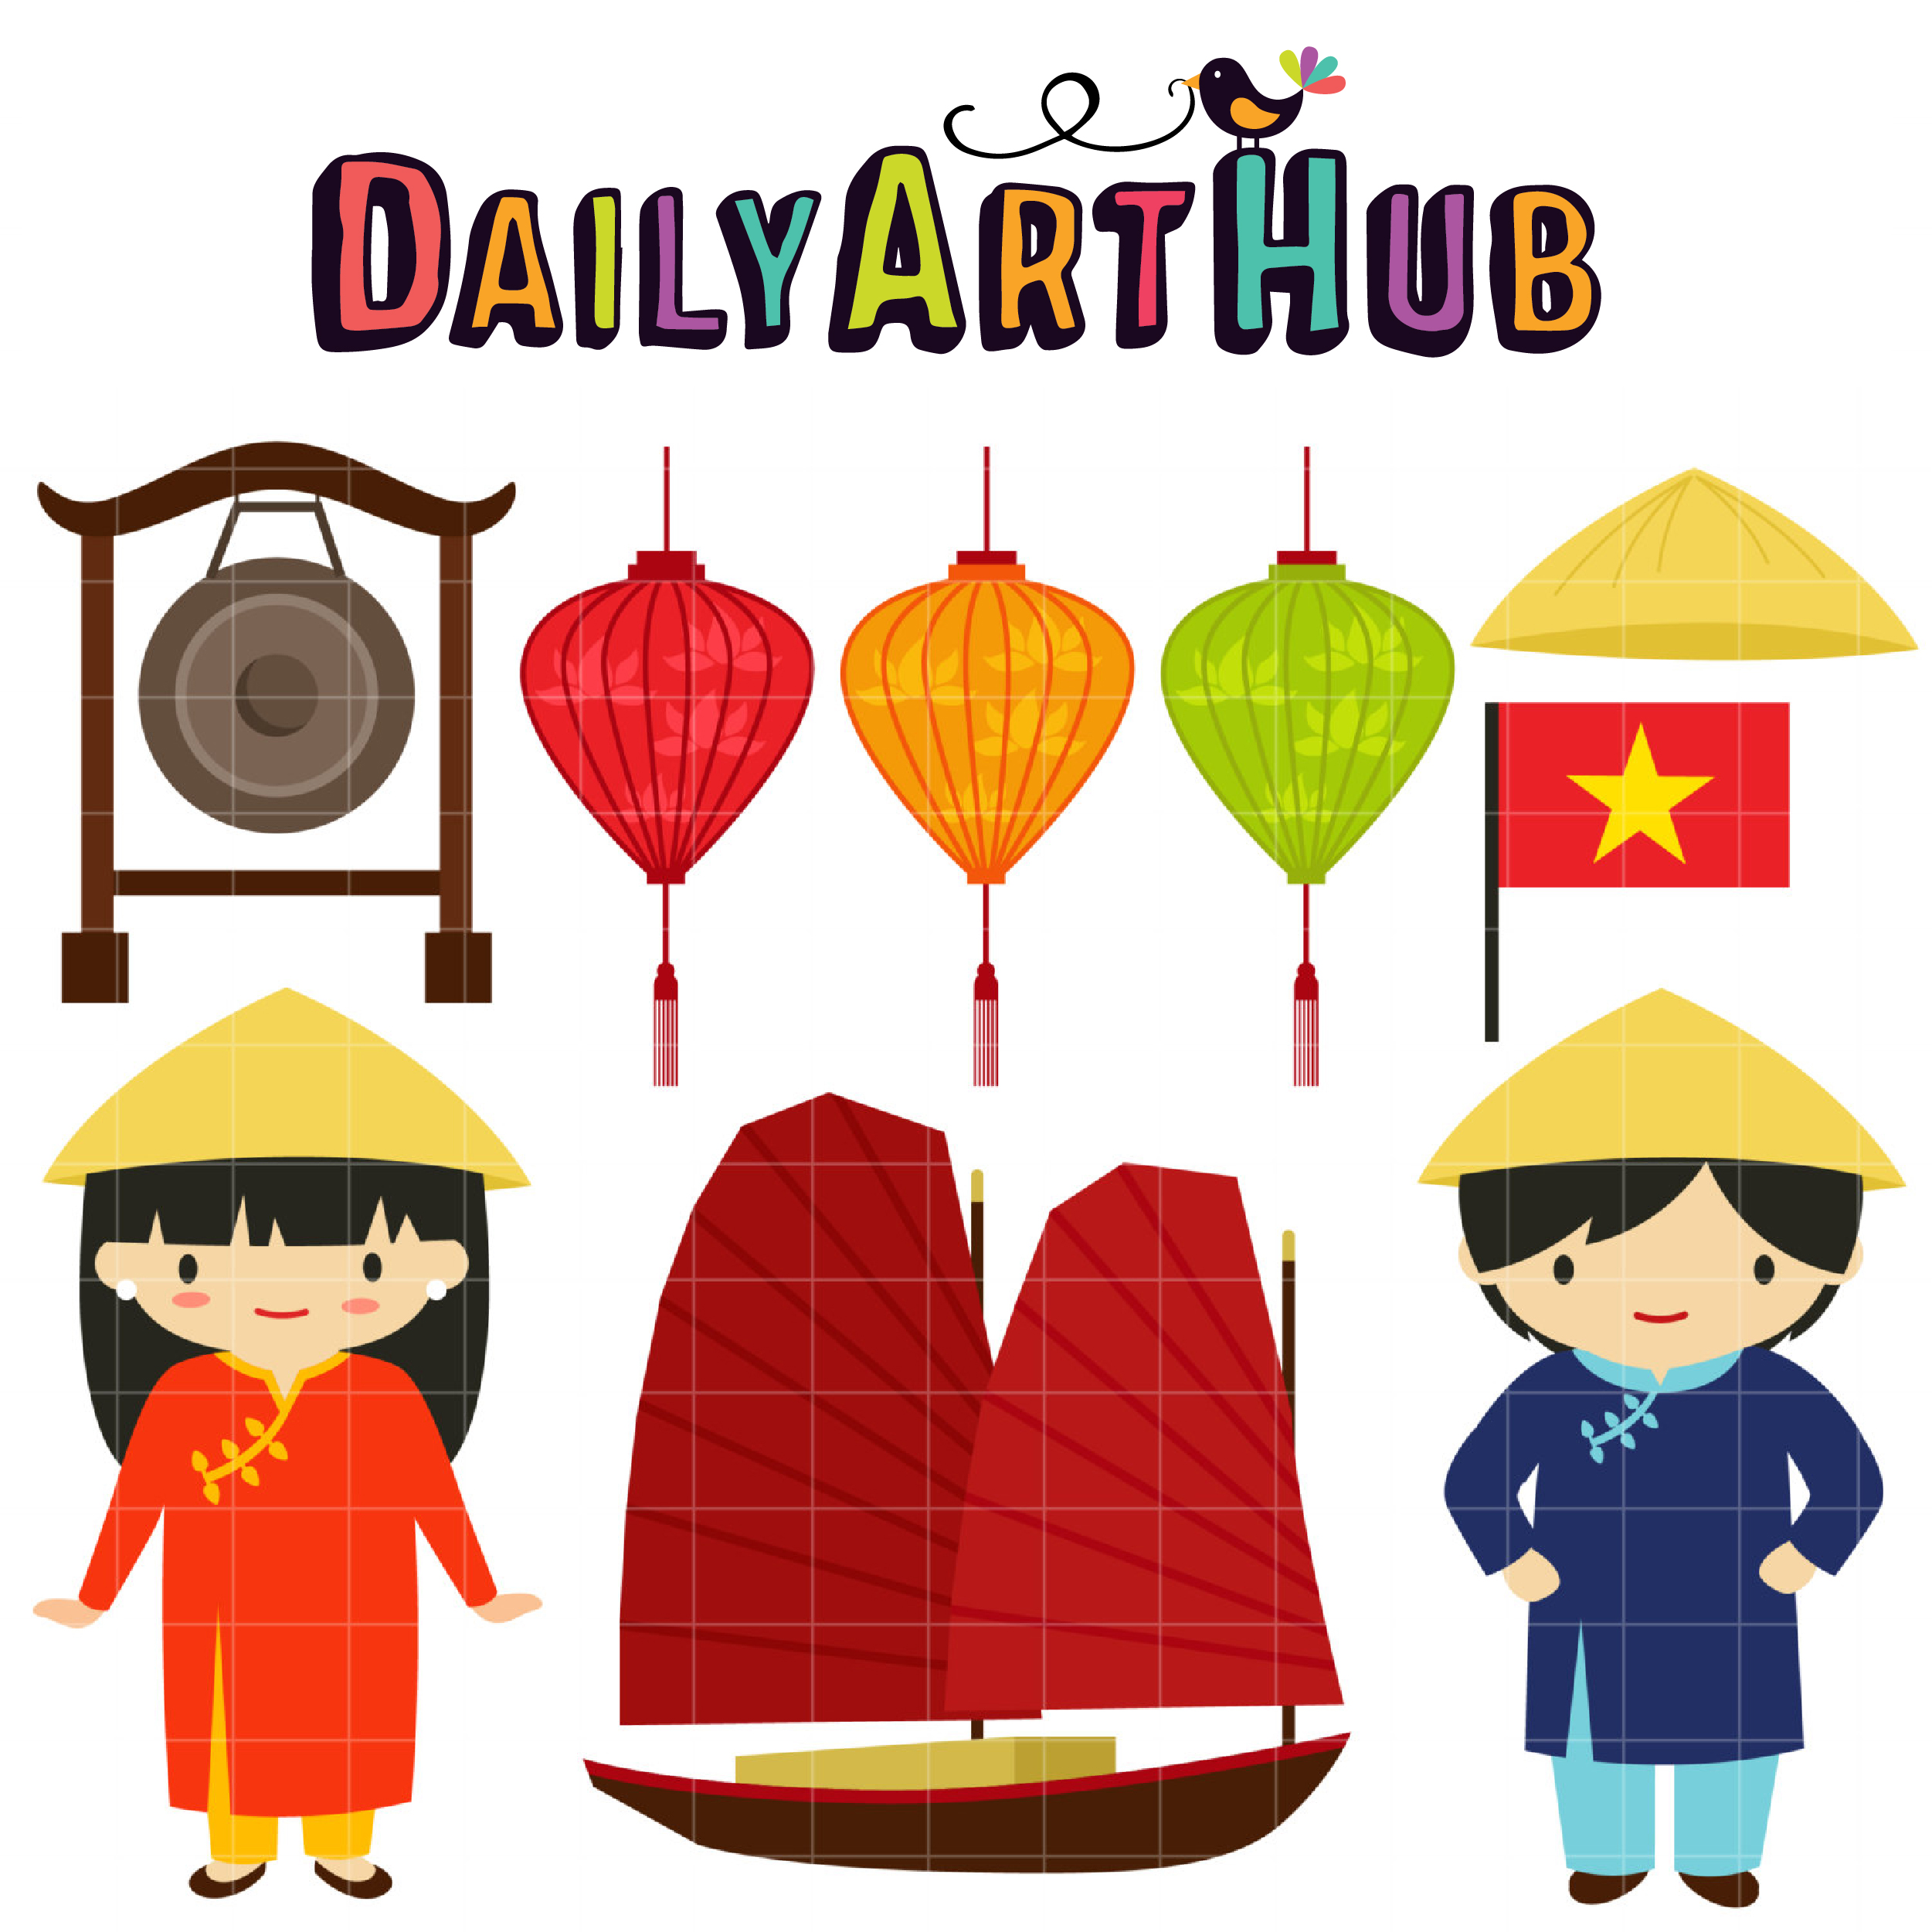 xin chao vietnam clip art set daily art hub free clip art everyday